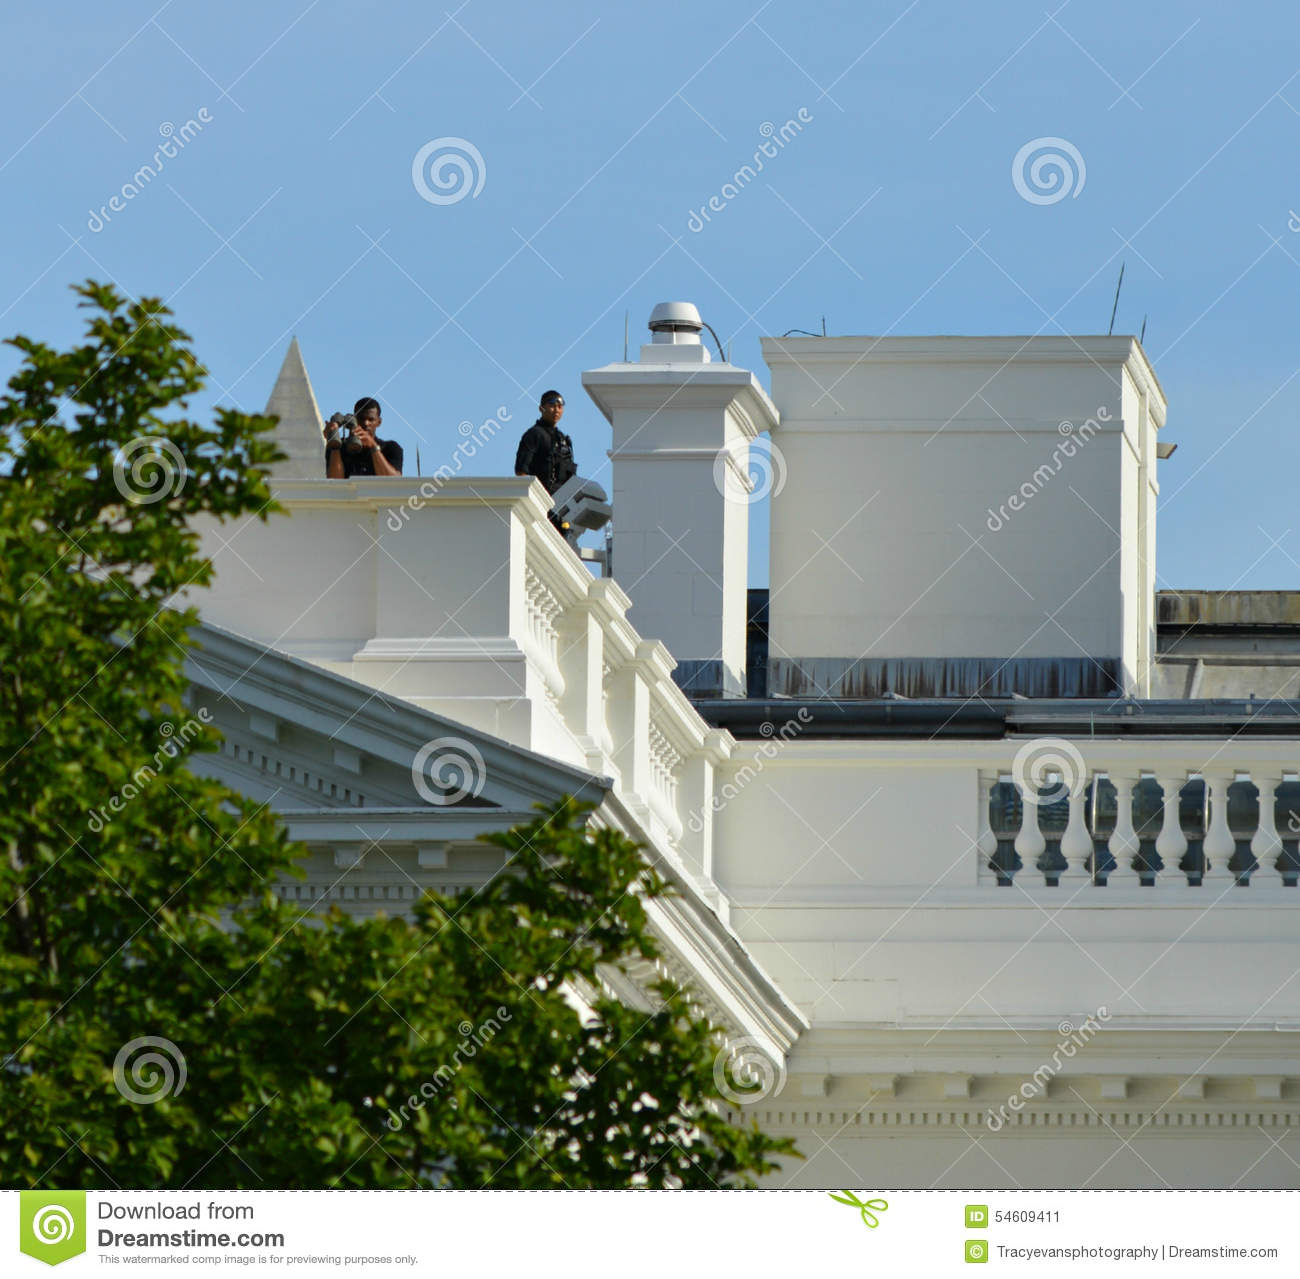 Us Secret Service White House Rooftop Surveillance